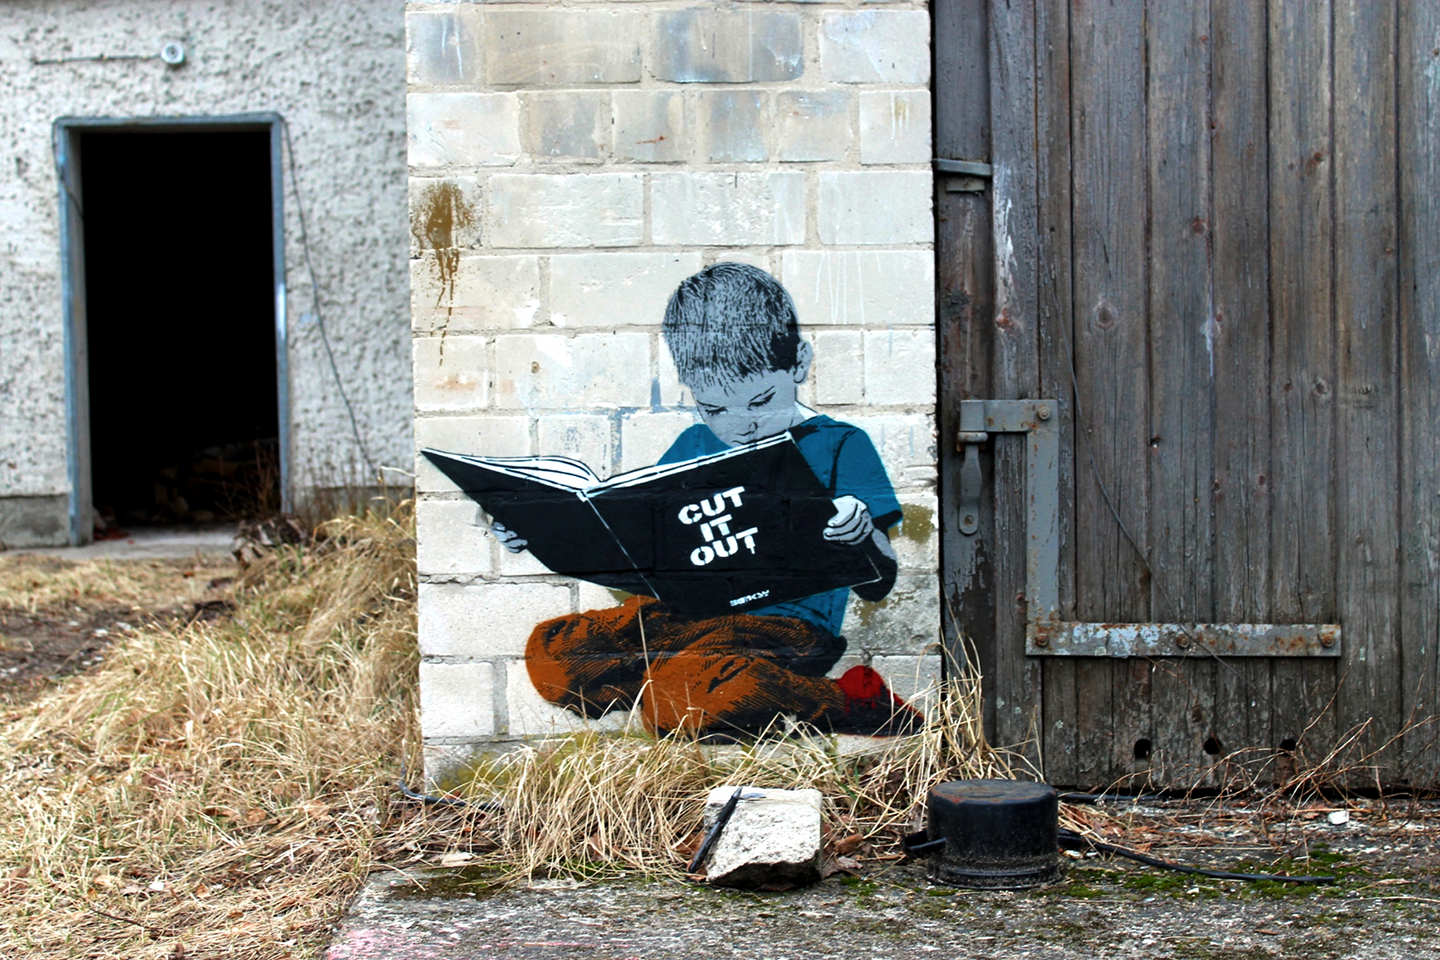 Banksy - Cut it out by Berlin based stencil Street Artist Alias